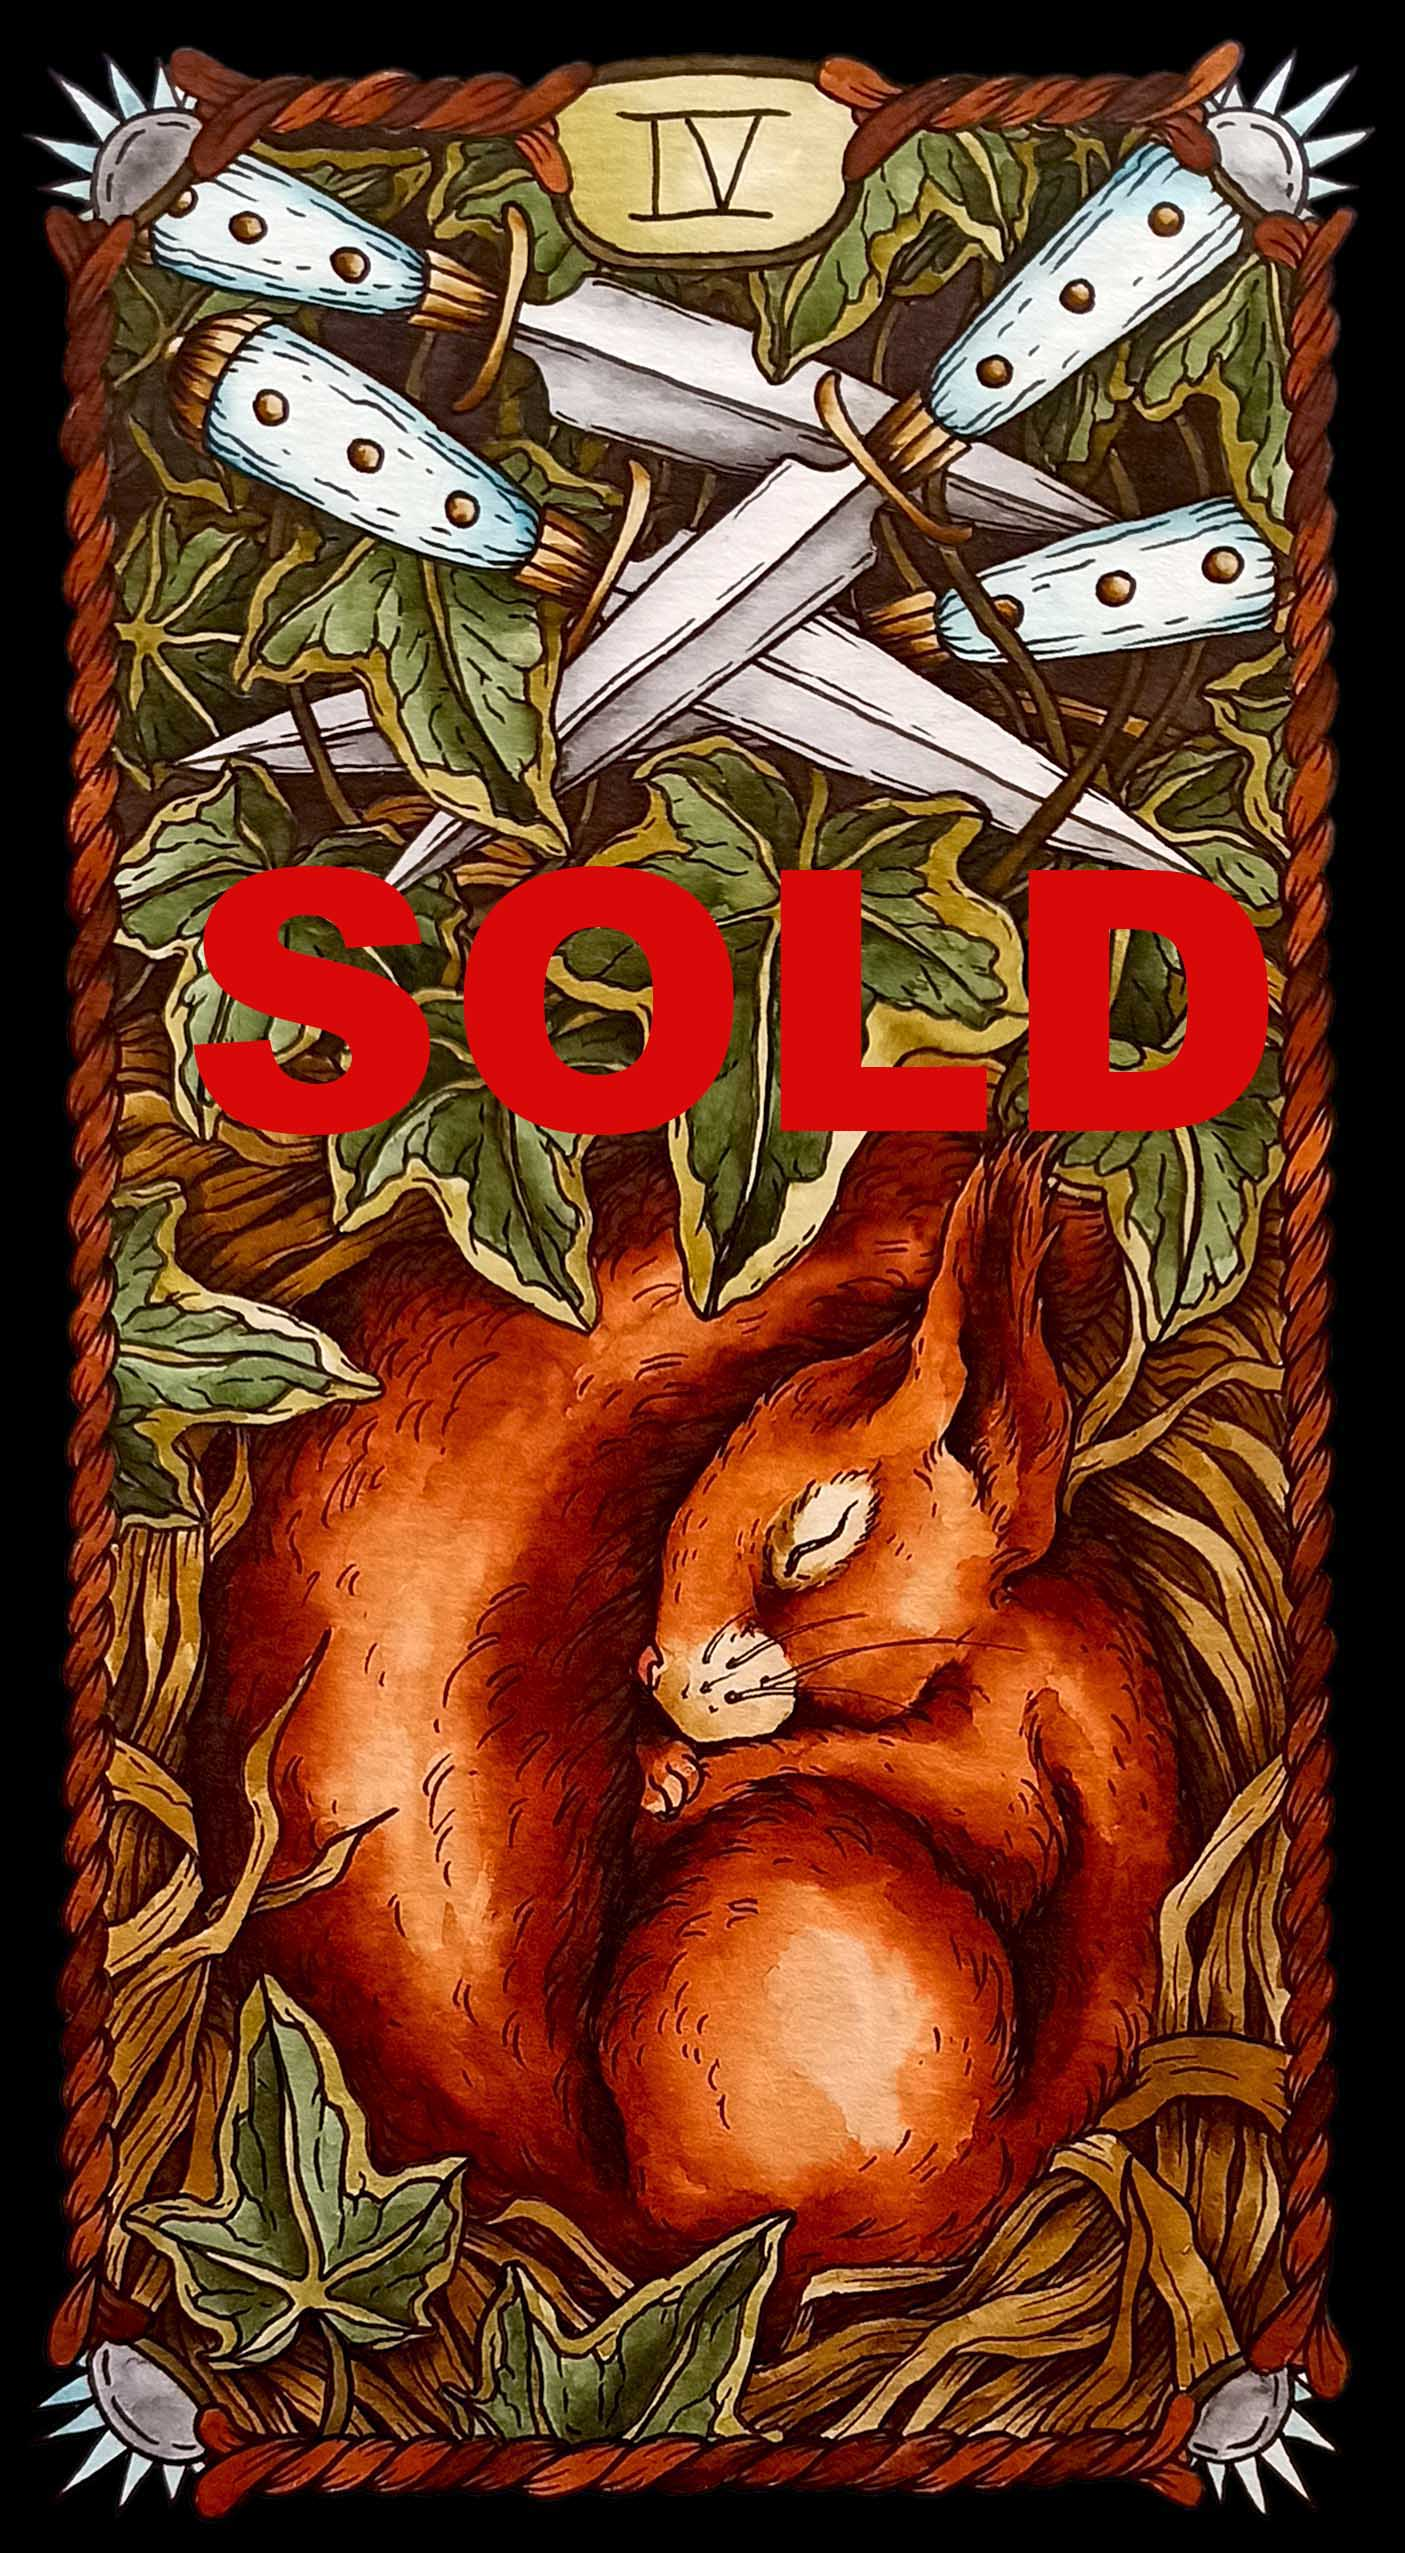 Swords 04 sold